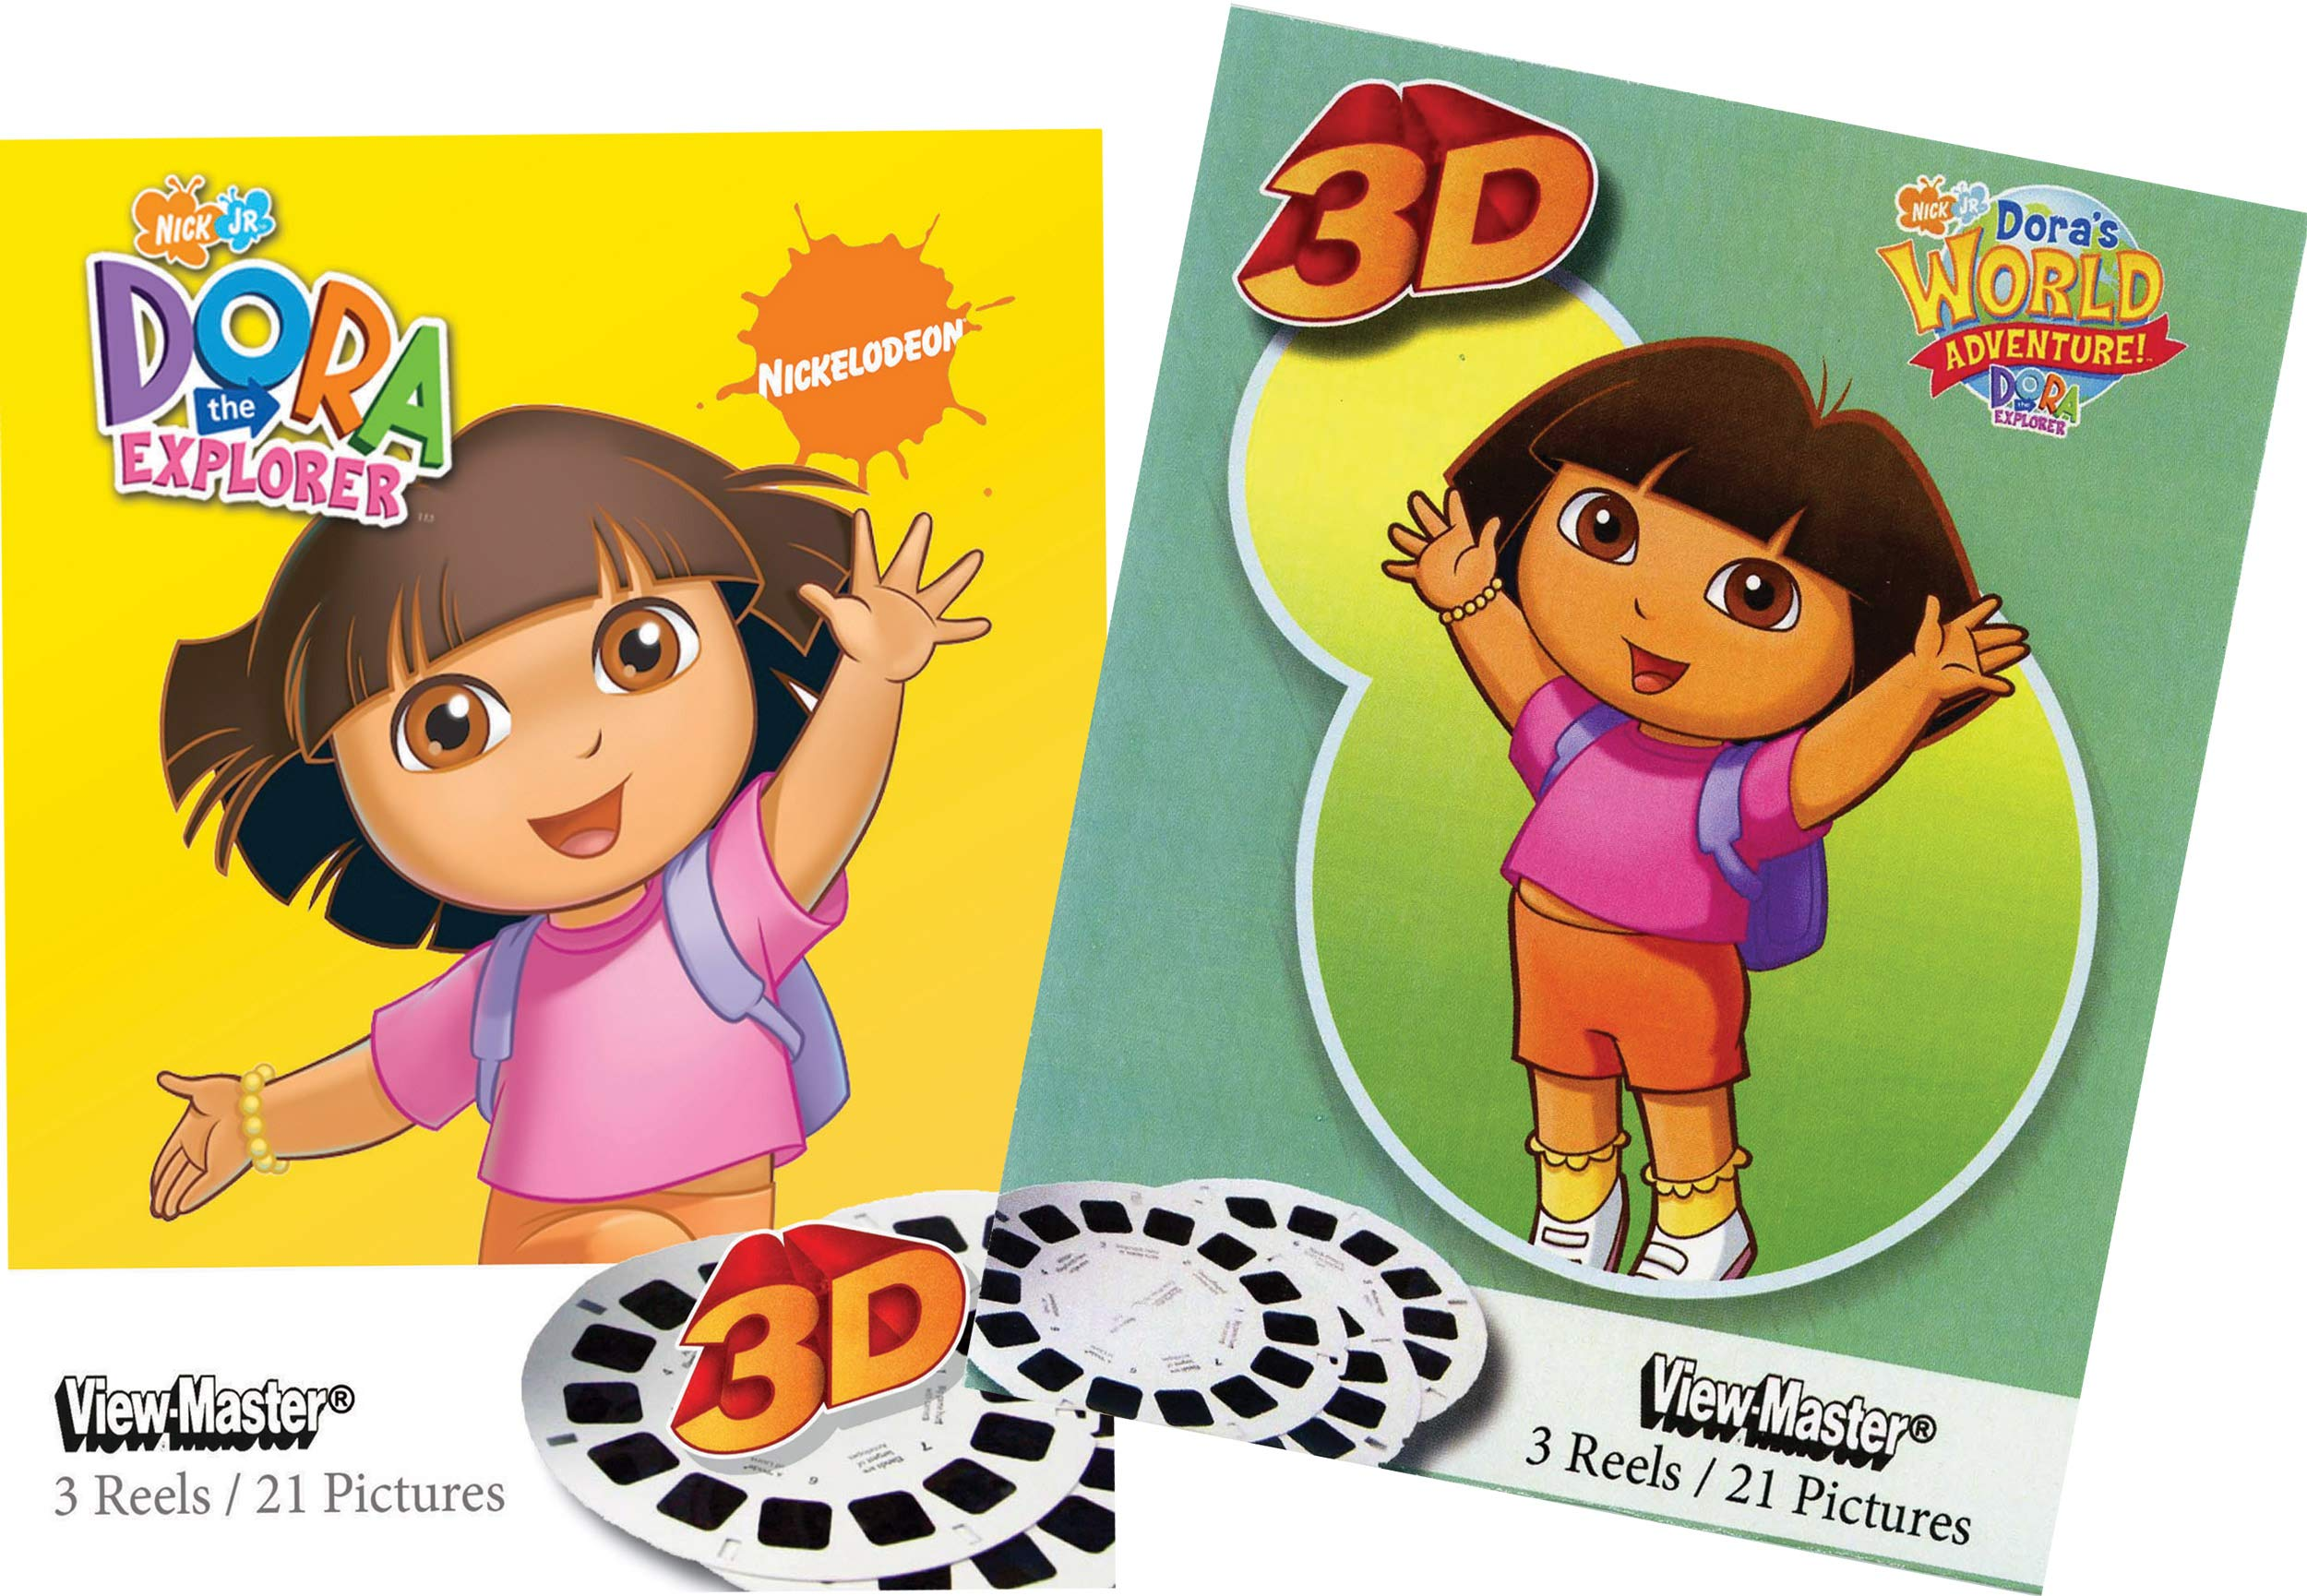 Dora The Explorer - Deluxe Set - 6 Reels - Classic ViewMaster by 3Dstereo ViewMaster